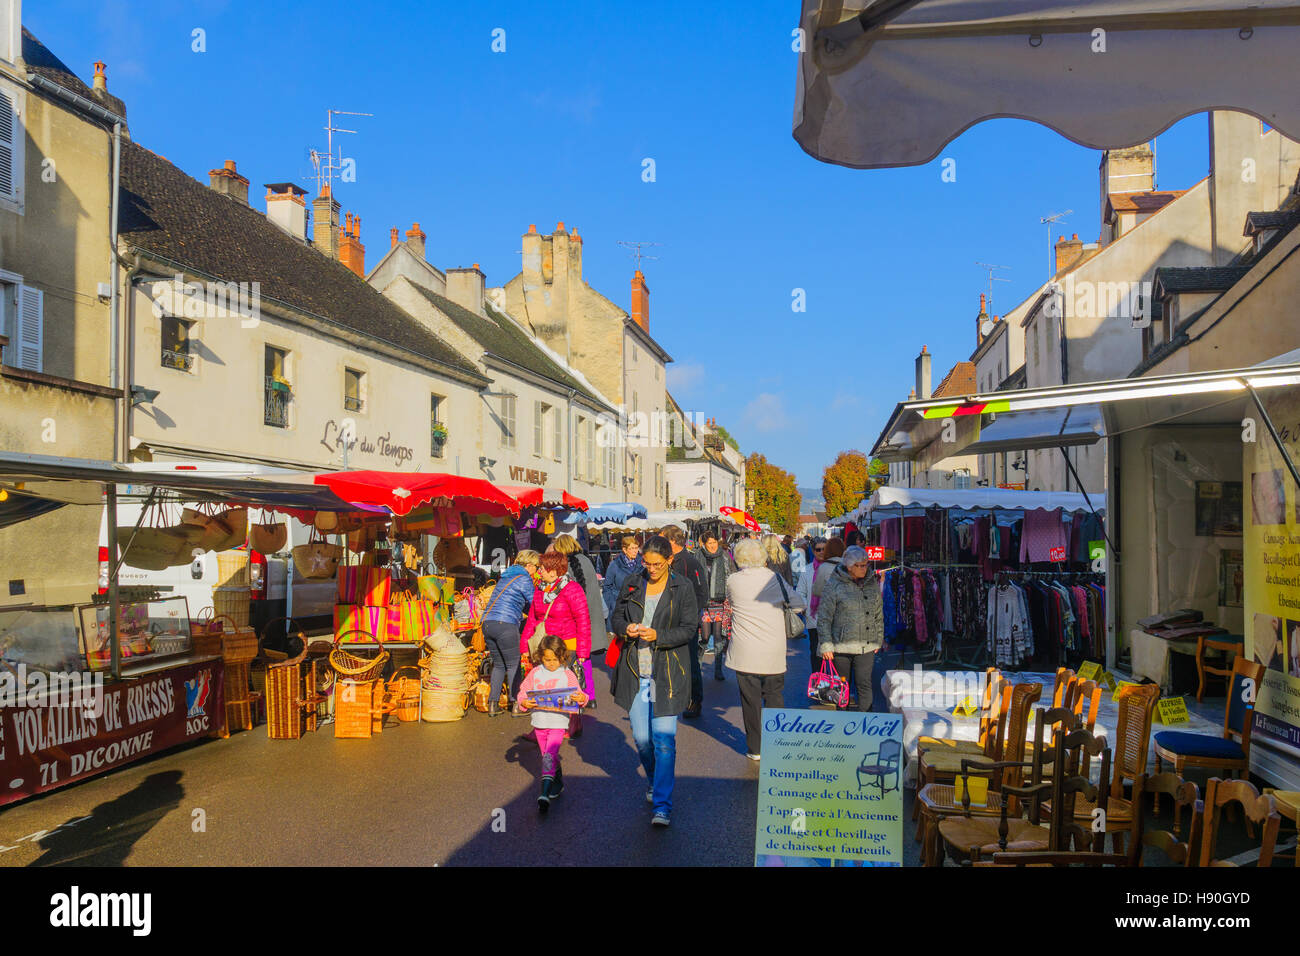 BEAUNE, FRANCE - OCTOBER 15, 2016: Market scene with various product, sellers and shoppers, in Beaune, Burgundy, - Stock Image